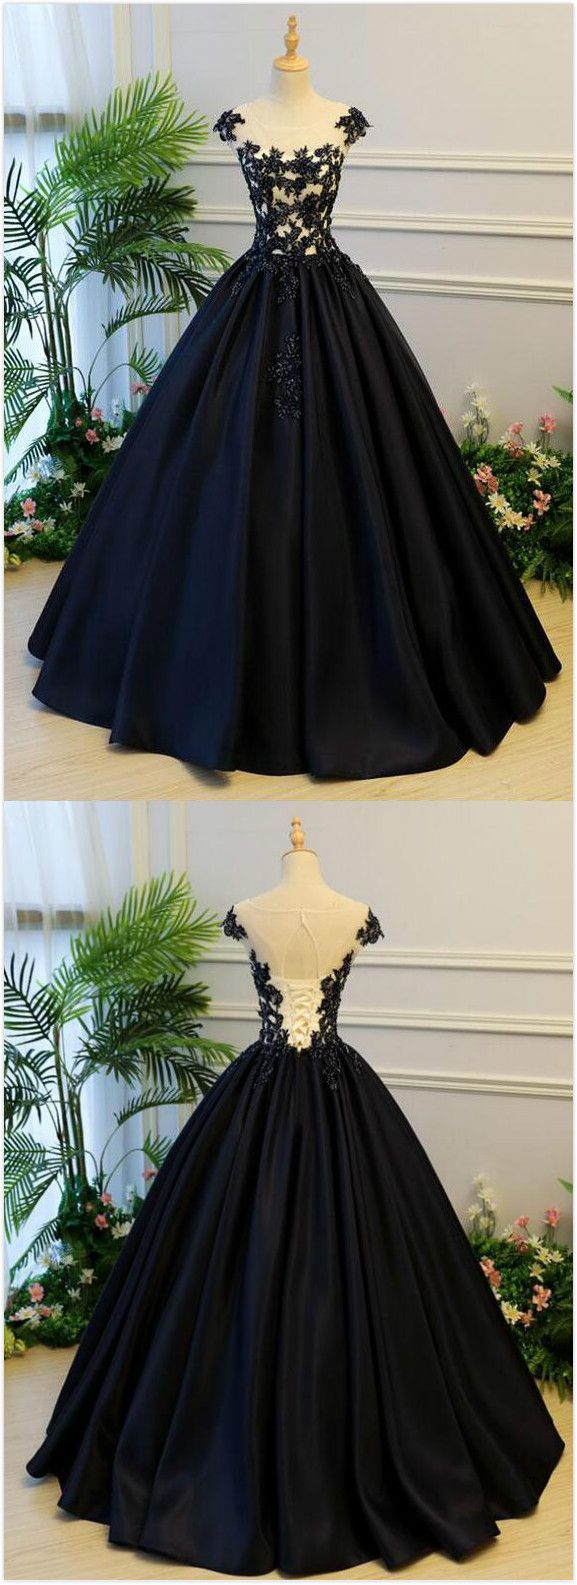 Generous Prom Dress,Ball Gown Prom Dress,Stain Prom Dress,Long Party Dress,A-Line Round Neck Cap Sleeves Prom Dress, Lace-up Back Black Long Prom/Evening Dress with Beading #longpromdresses